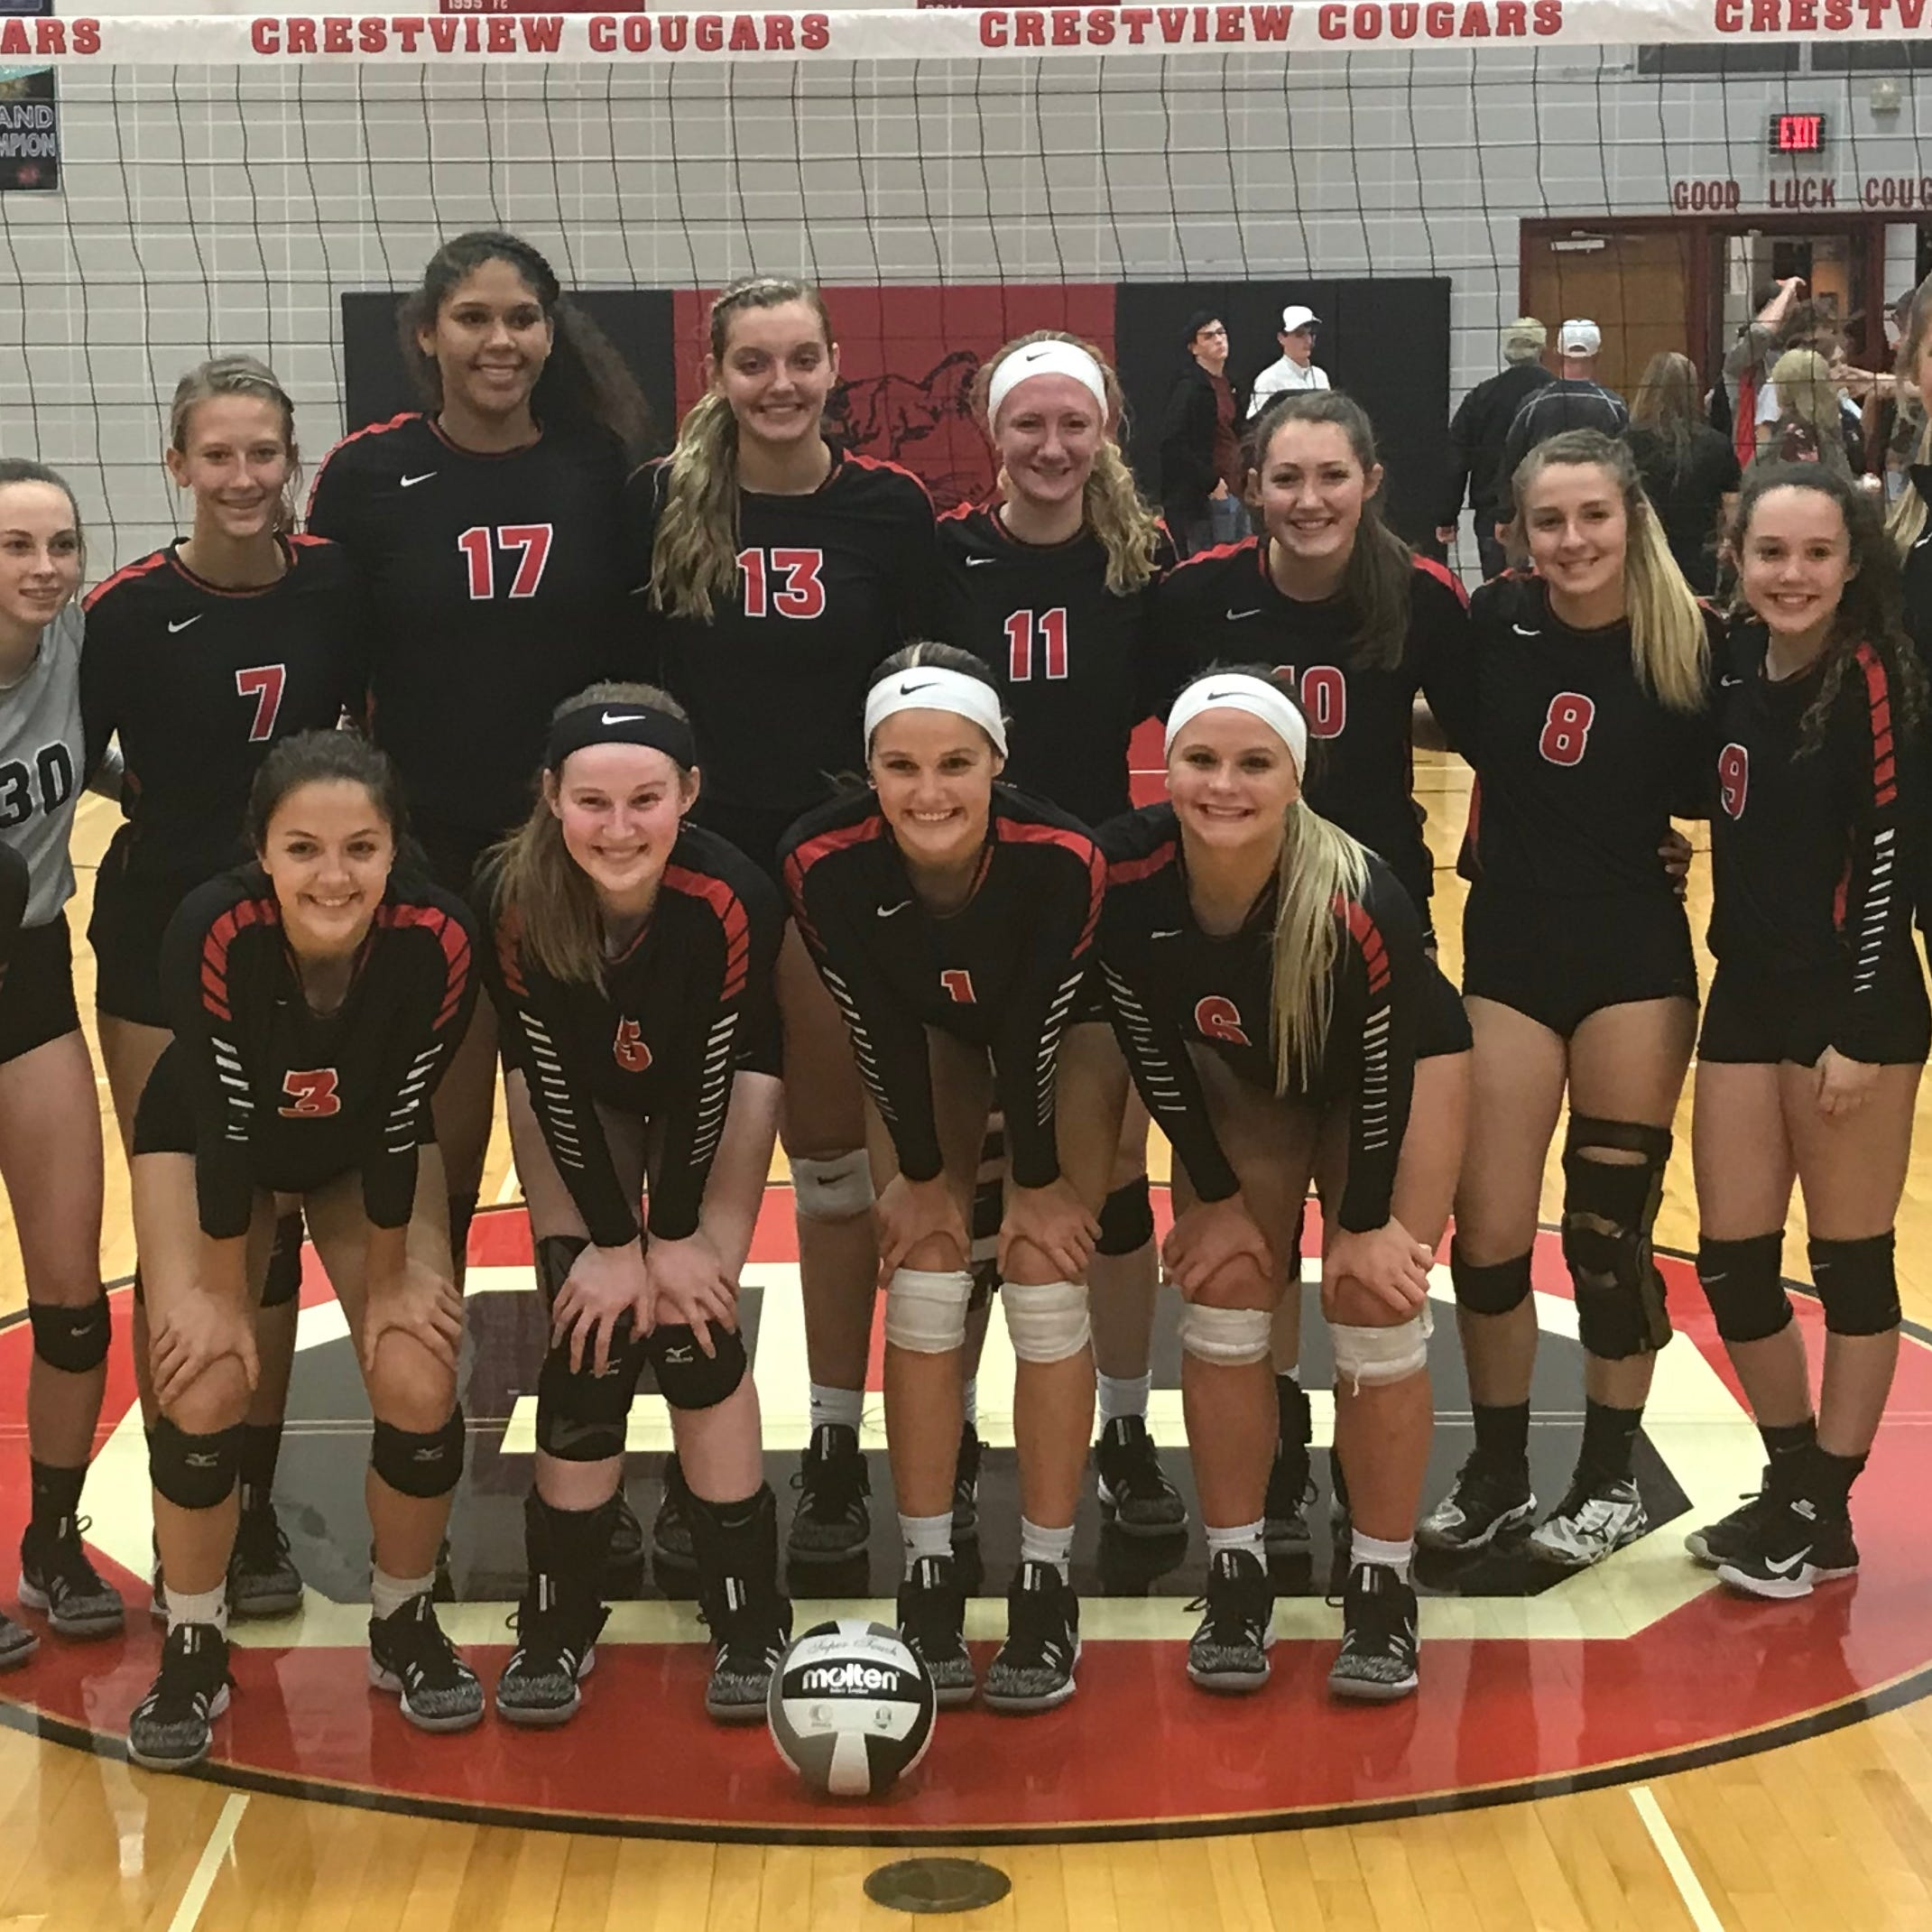 Crestview Lady Cougars claim first Firelands Conference championship in 22 years